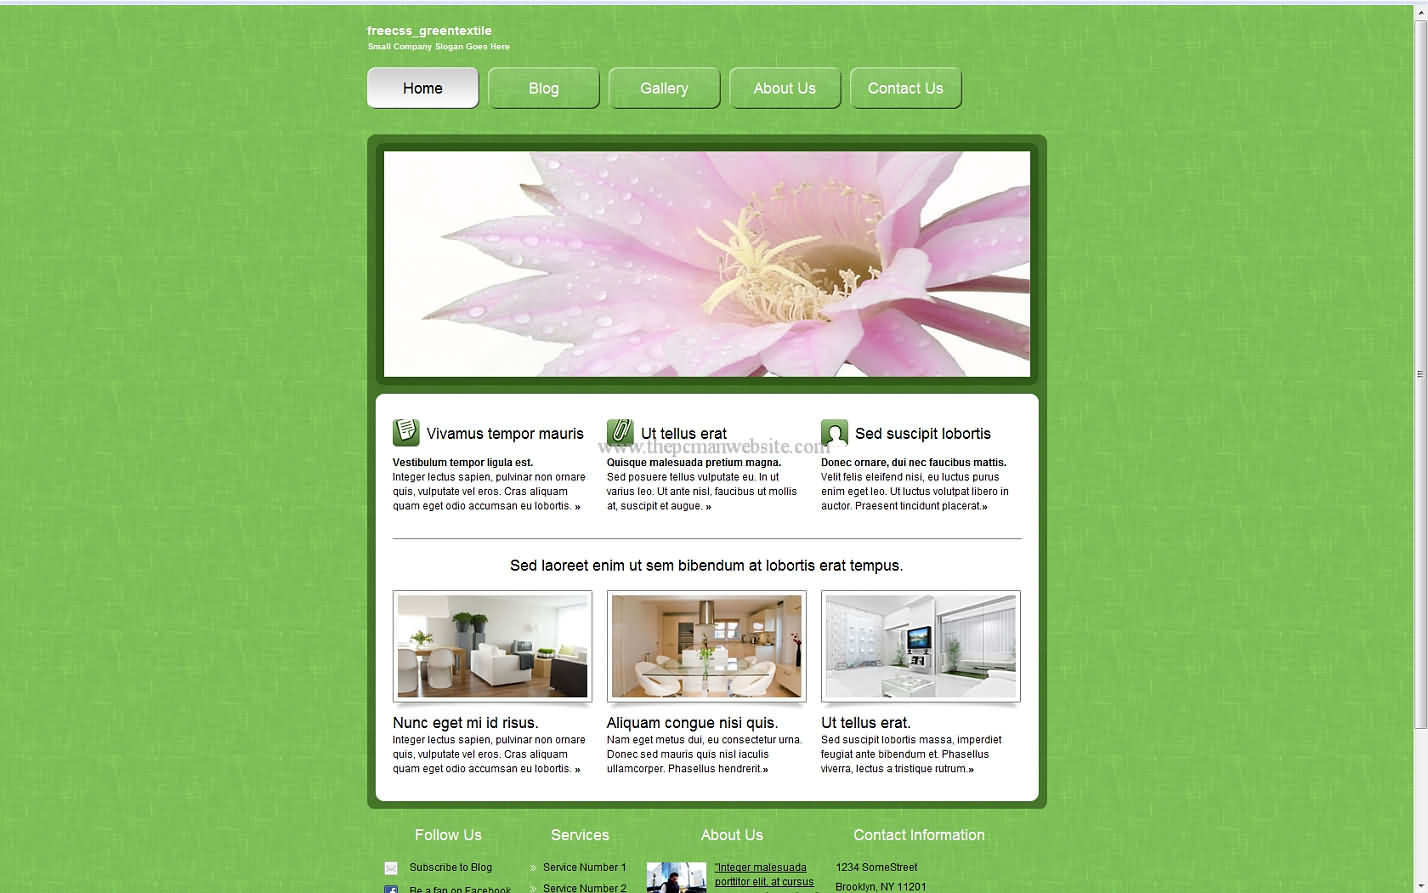 Freecss Greentextile css template